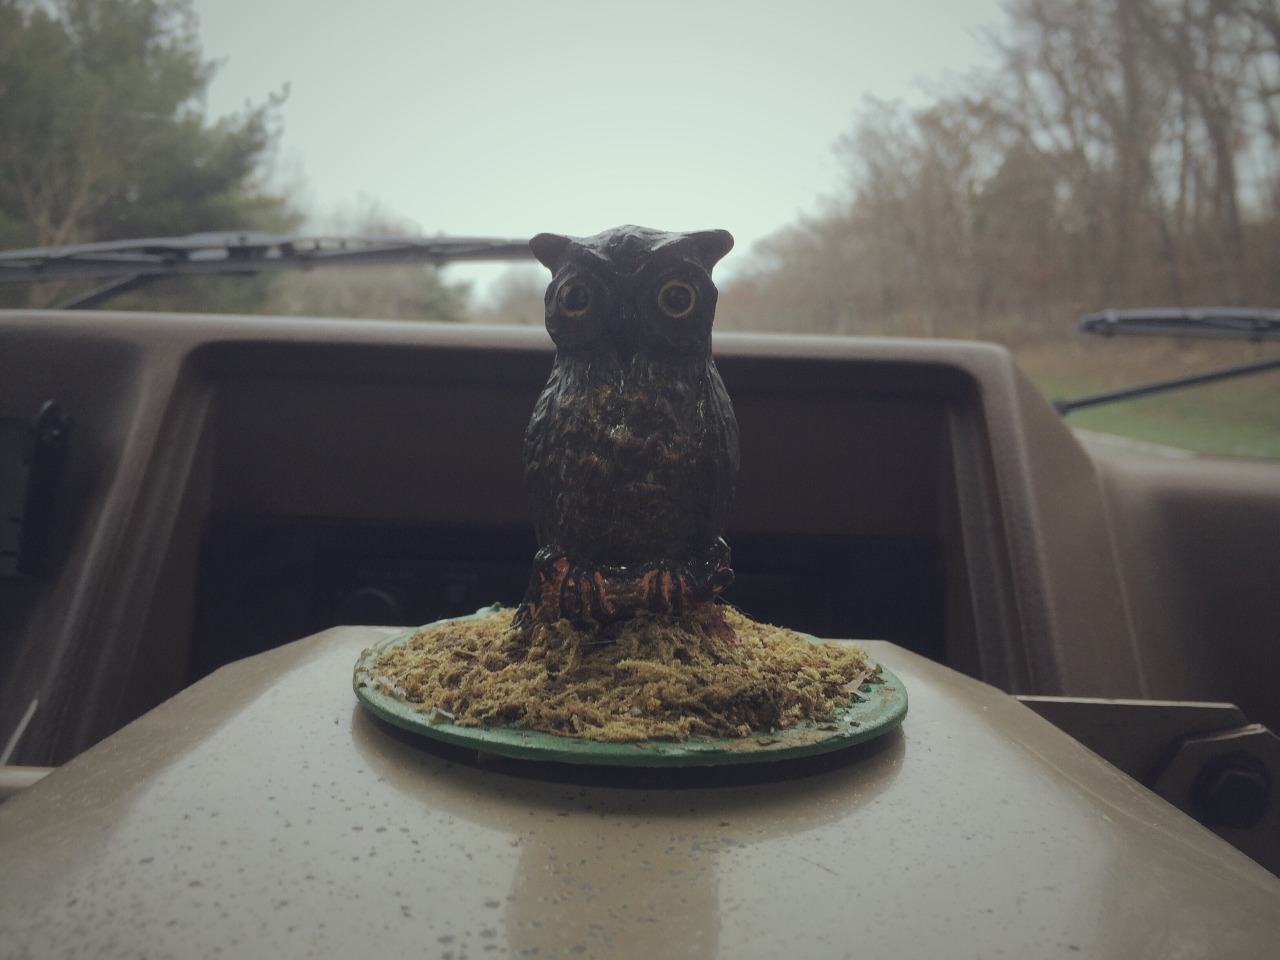 11.21.15 Please give a warm welcome to the newest member of our band, Edwing the Bus Owl! Scored at a thrift shop in Lake Wallenpaupack for $3.